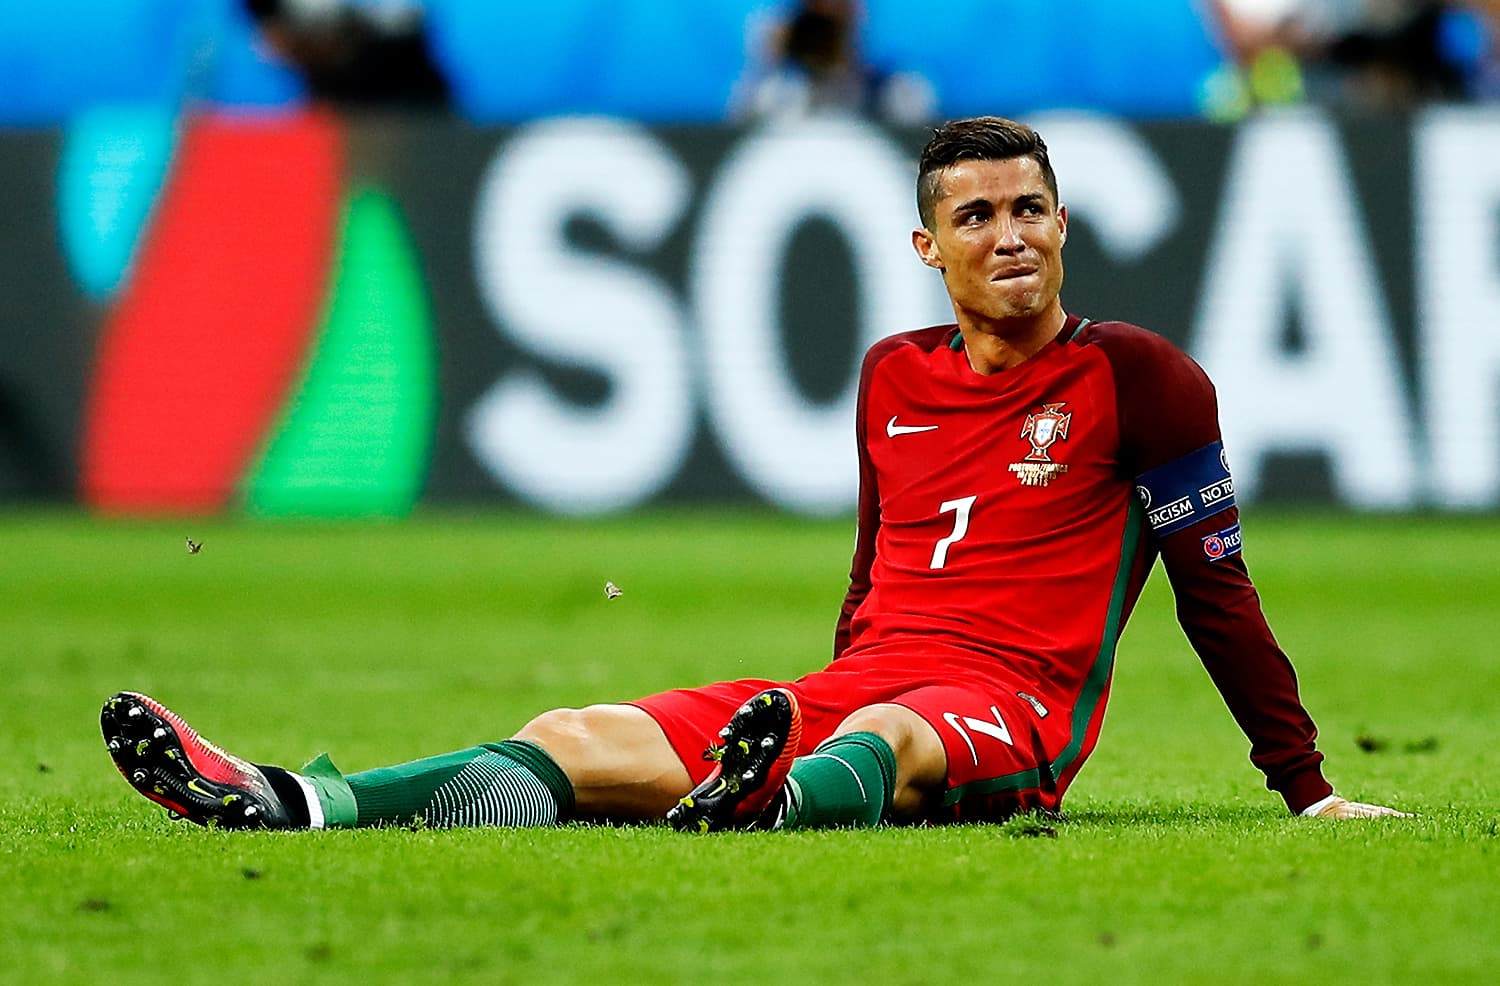 Ronaldo sits on the pitch dejected after a challenge by France's Dmitri Payet. — AP